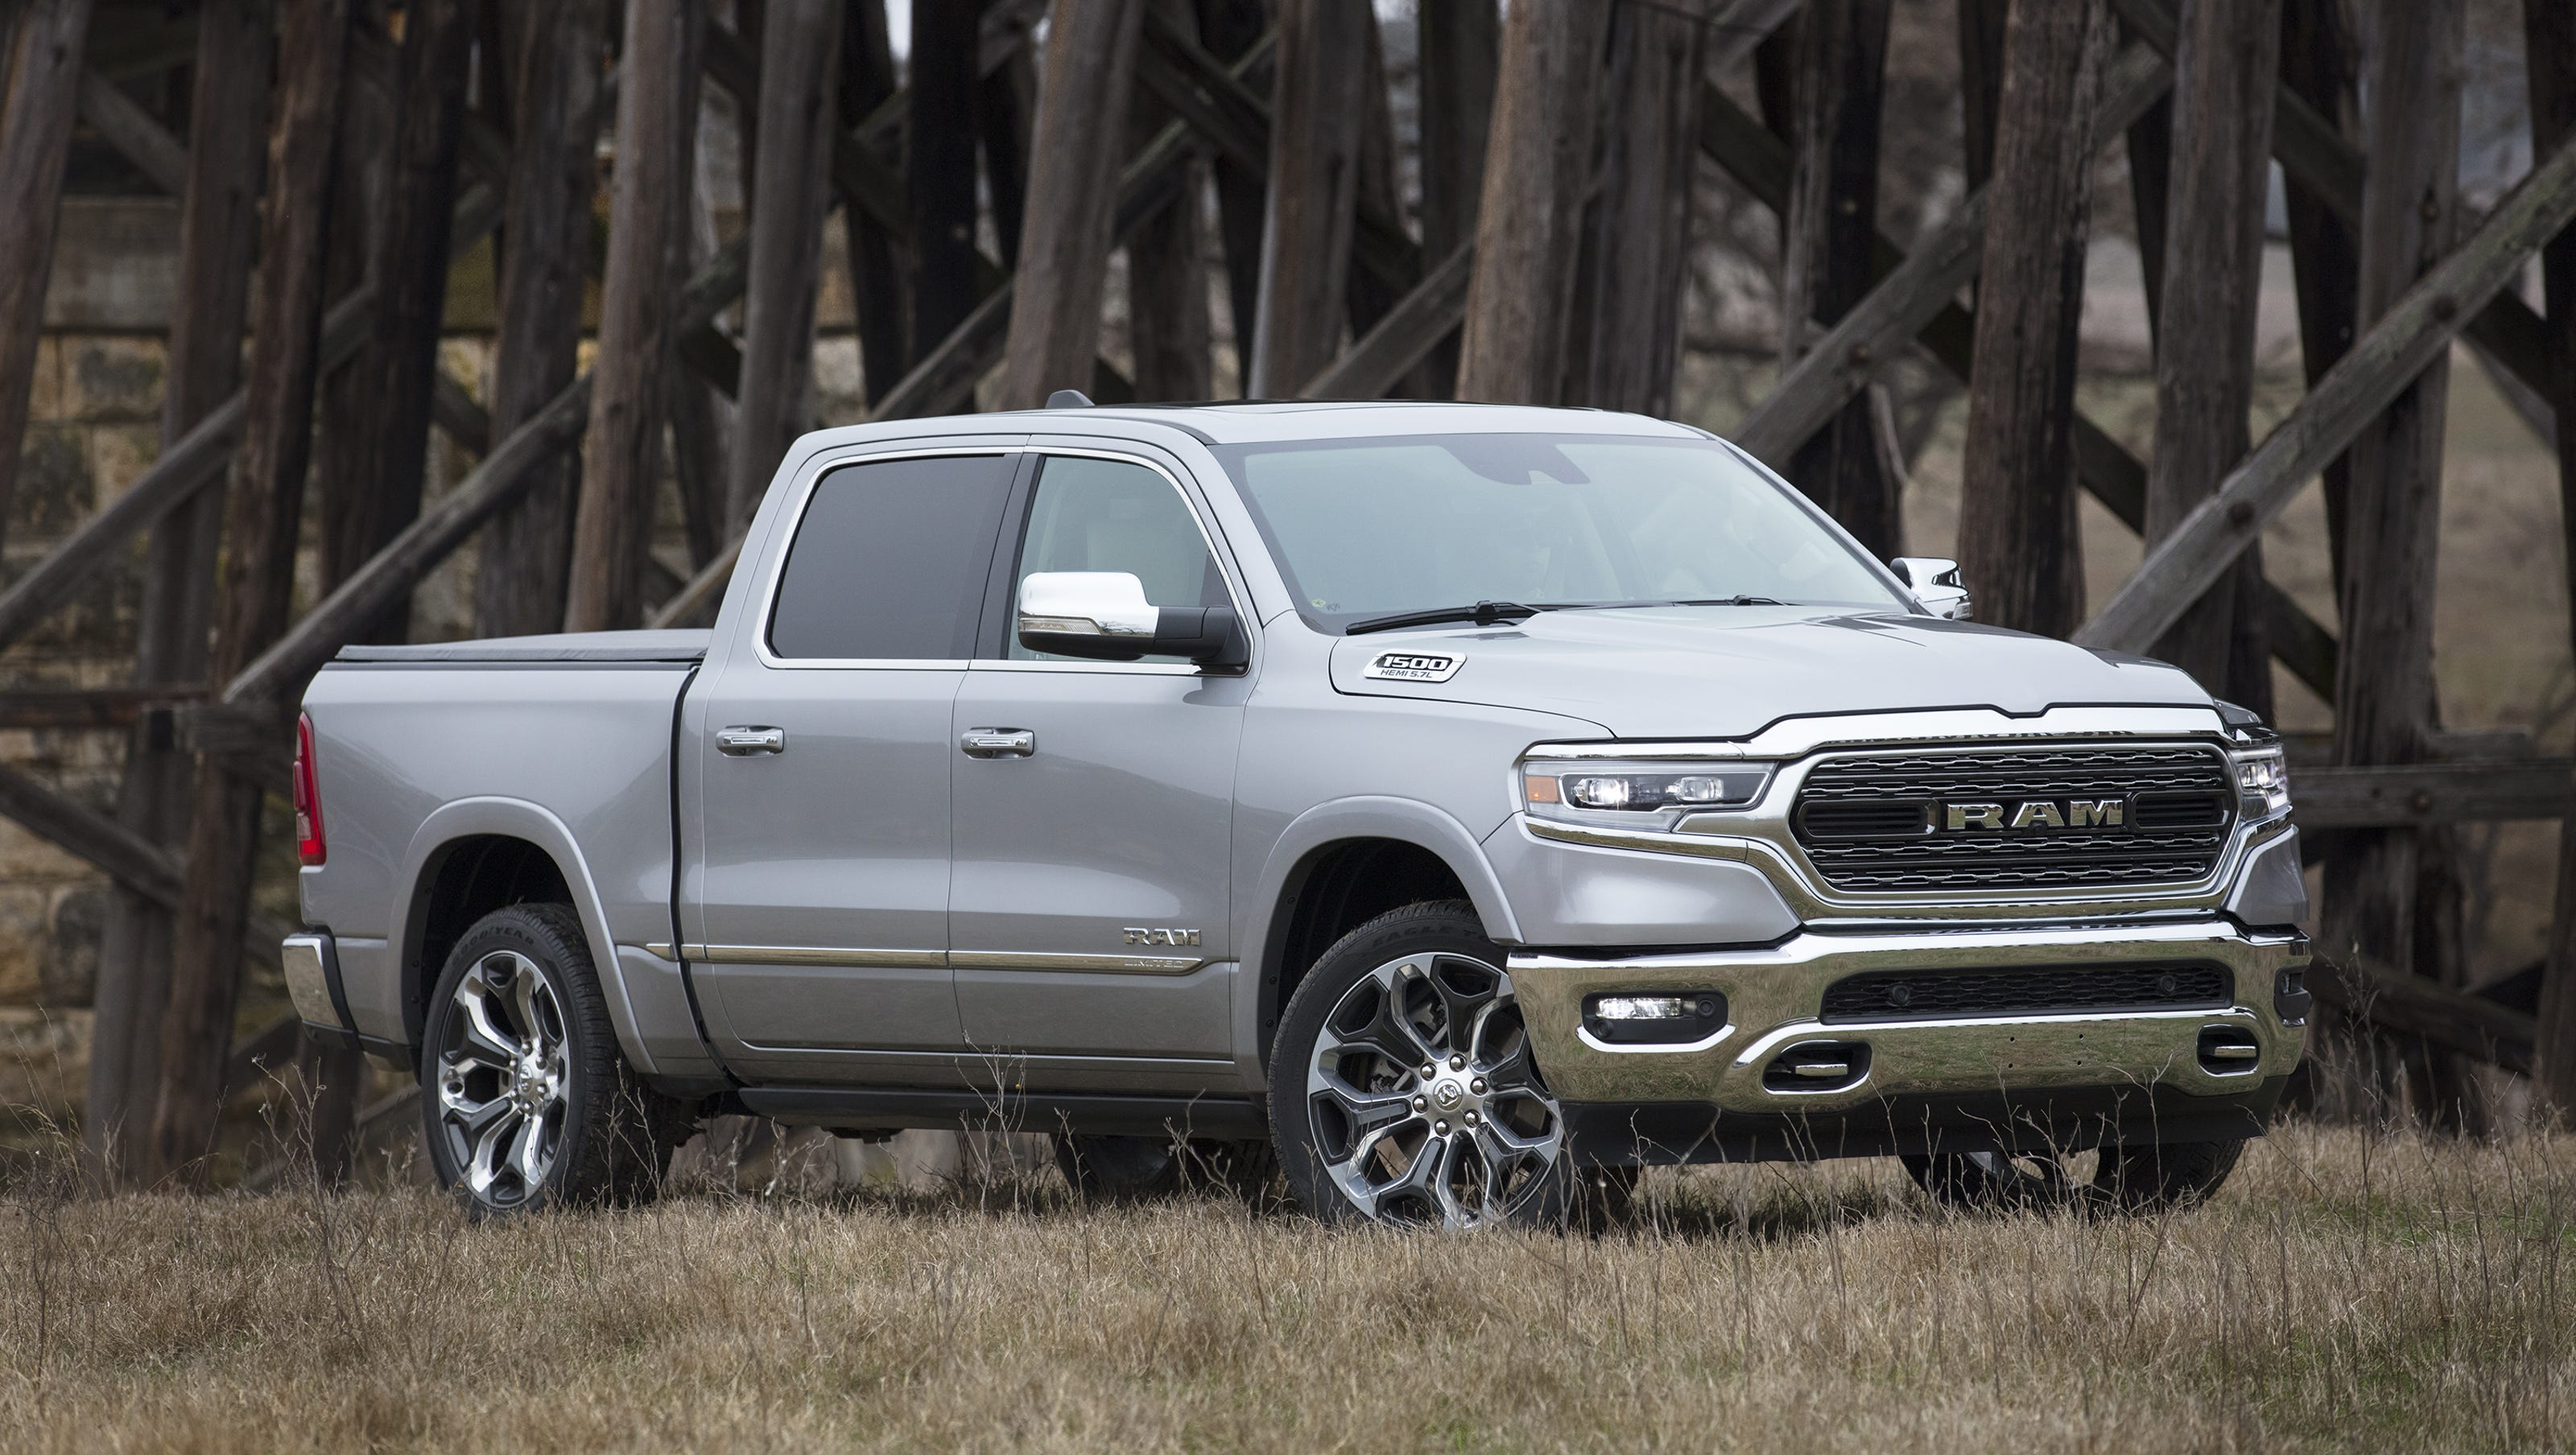 2019 Ram 1500 pickup truck gets jump on Chevrolet Silverado, GMC Sierra